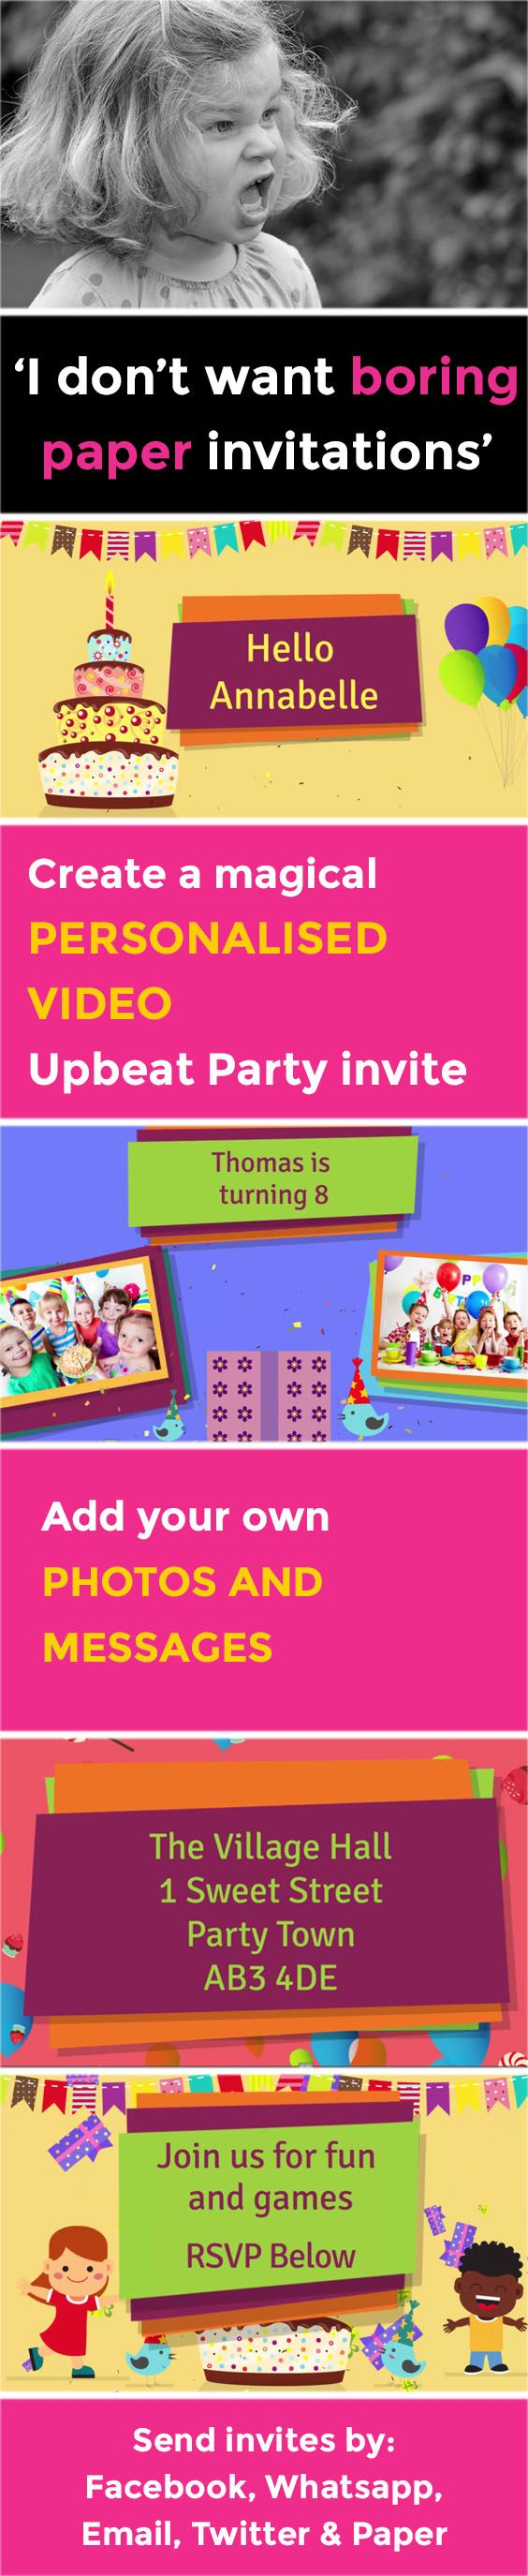 make your own birthday party invitations online for free%0A Create the perfect kids video party invitation that makes organising your  party a piece of cake  Children u    s evites have never been so magical